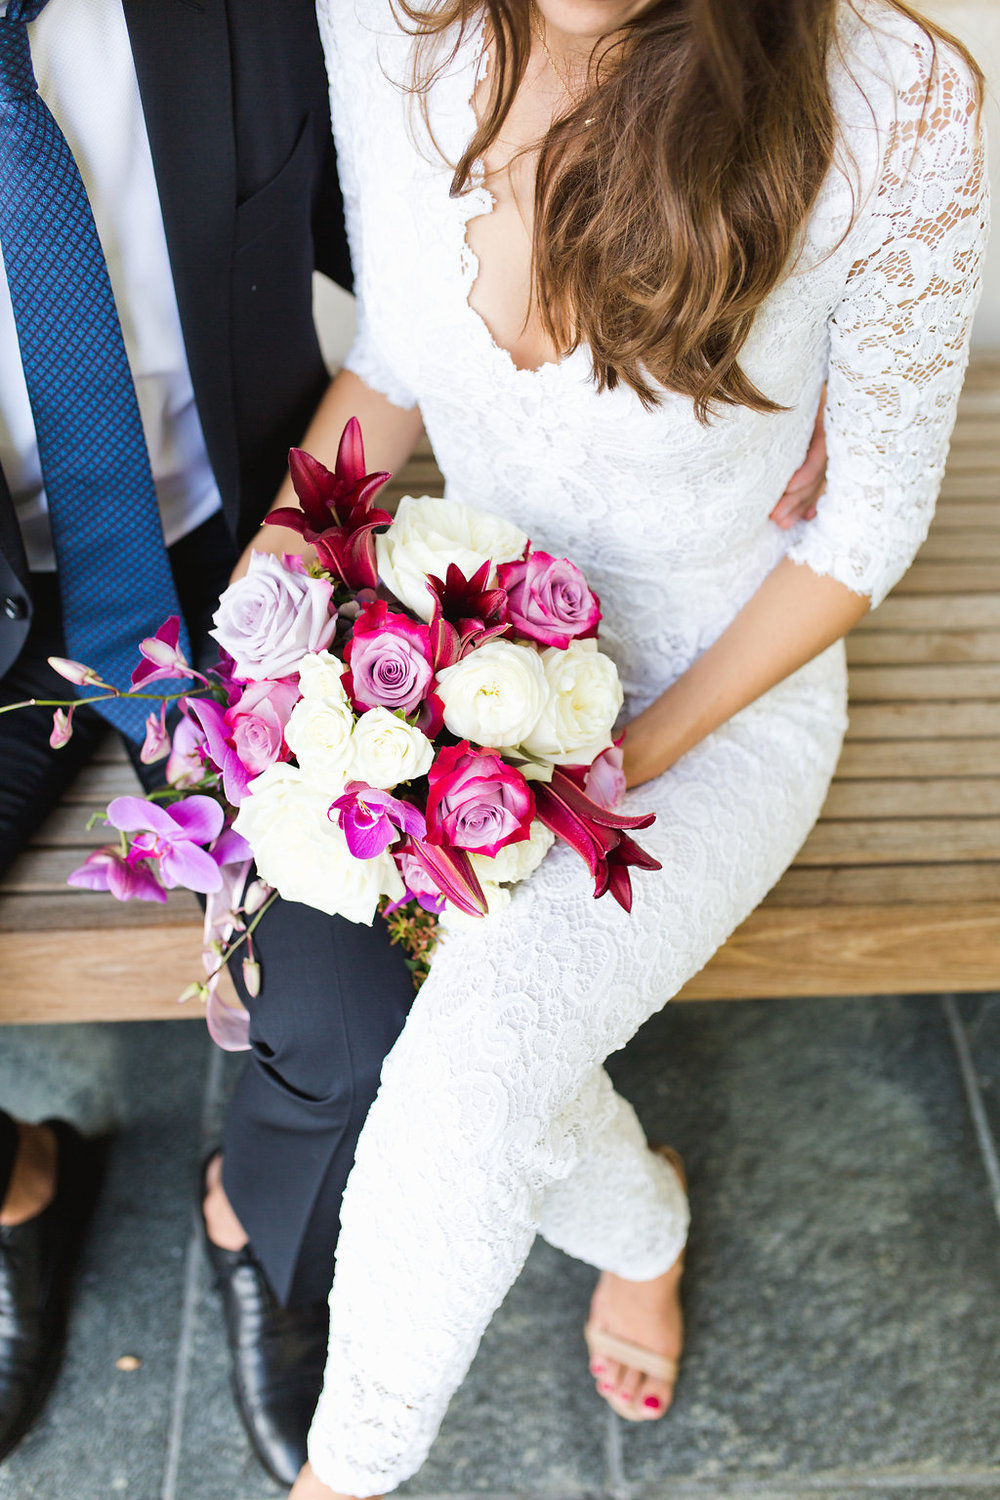 Seattle Courthouse Wedding | Seattle Municipal Court | Downtown Seattle Wedding | Intimate Elopement Wedding | Beautiful Simple Courthouse Wedding | Bride and Groom Portrait | White Wedding Jumpsuit Outfit | Beautiful Purple Wedding Bouquet | Mastin Labs Fuji 400 | Wedding Details